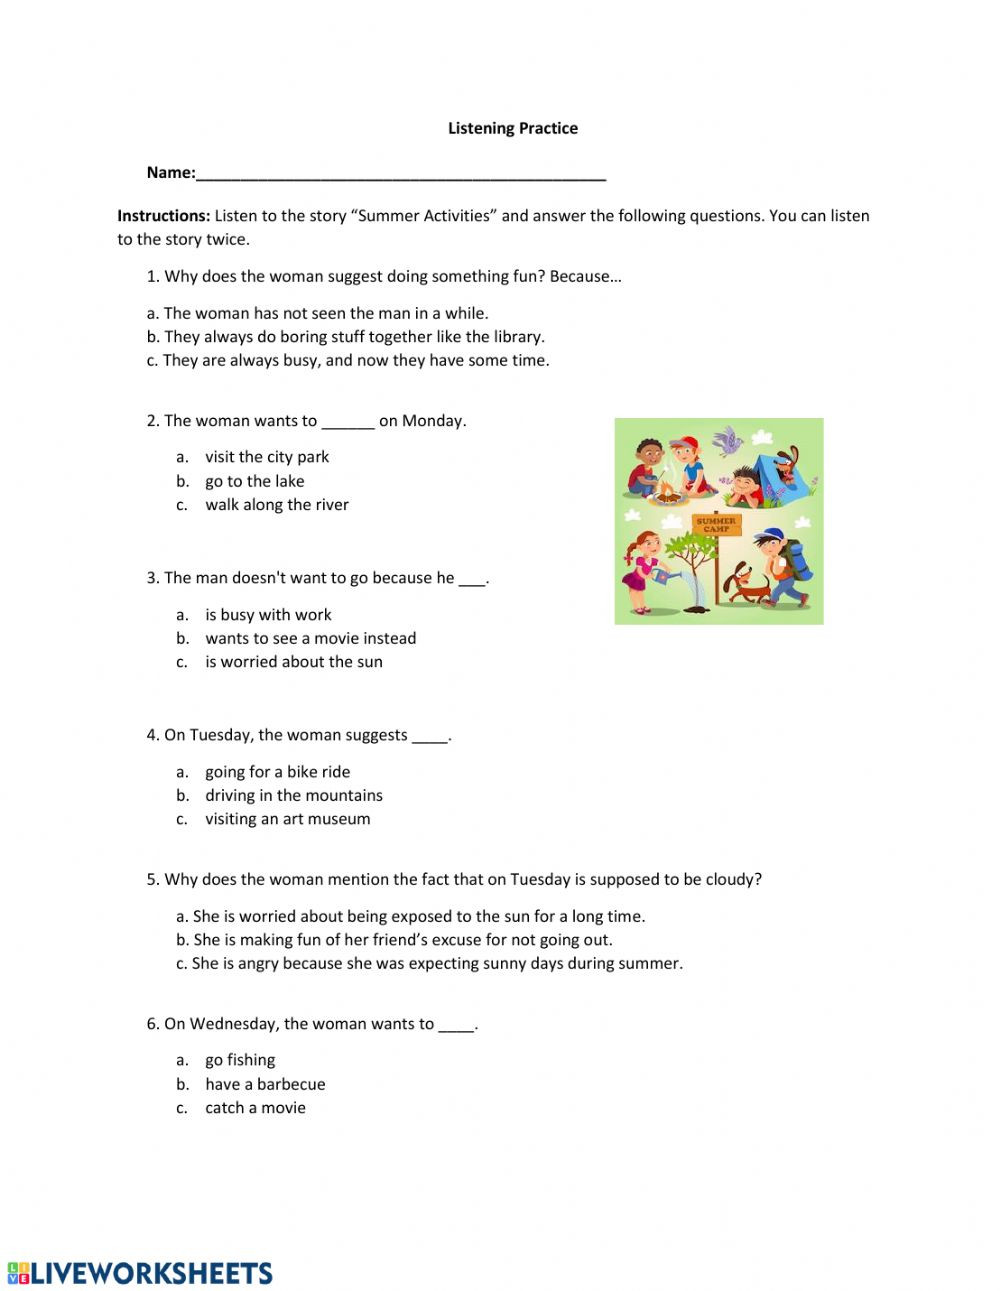 Language Arts Worksheets 8th Grade Practice Listening 2 May 8th Interactive Worksheet